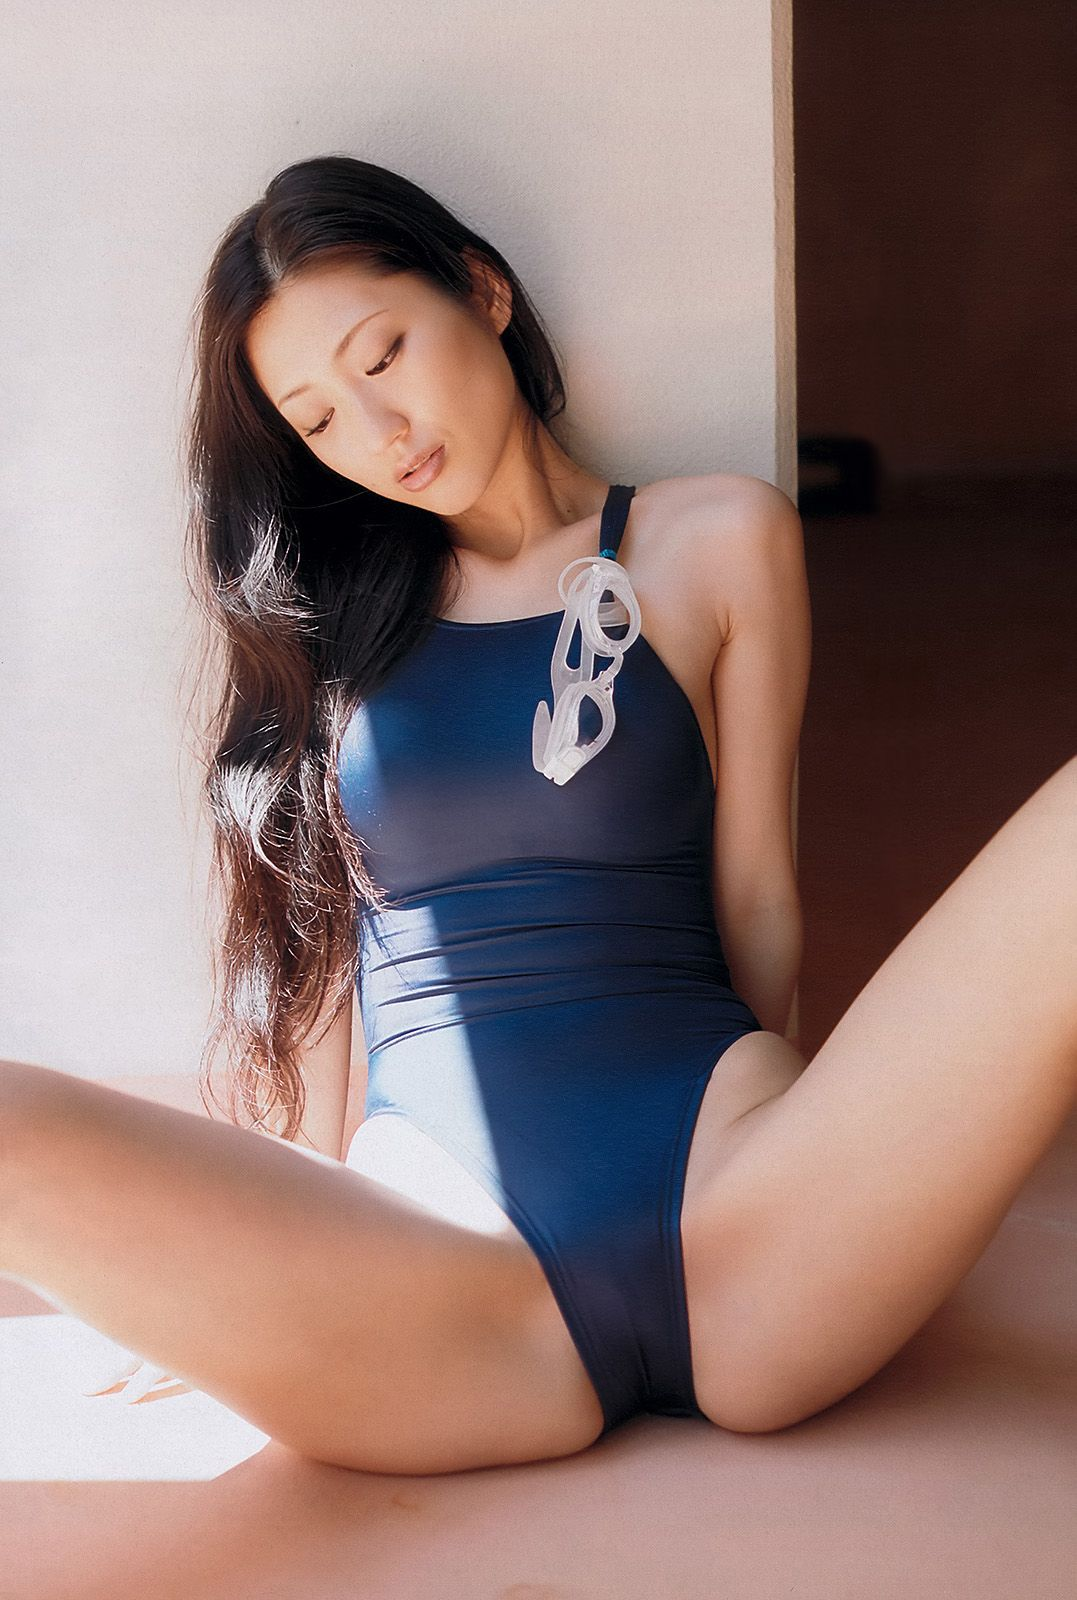 Asian picture swimsuit